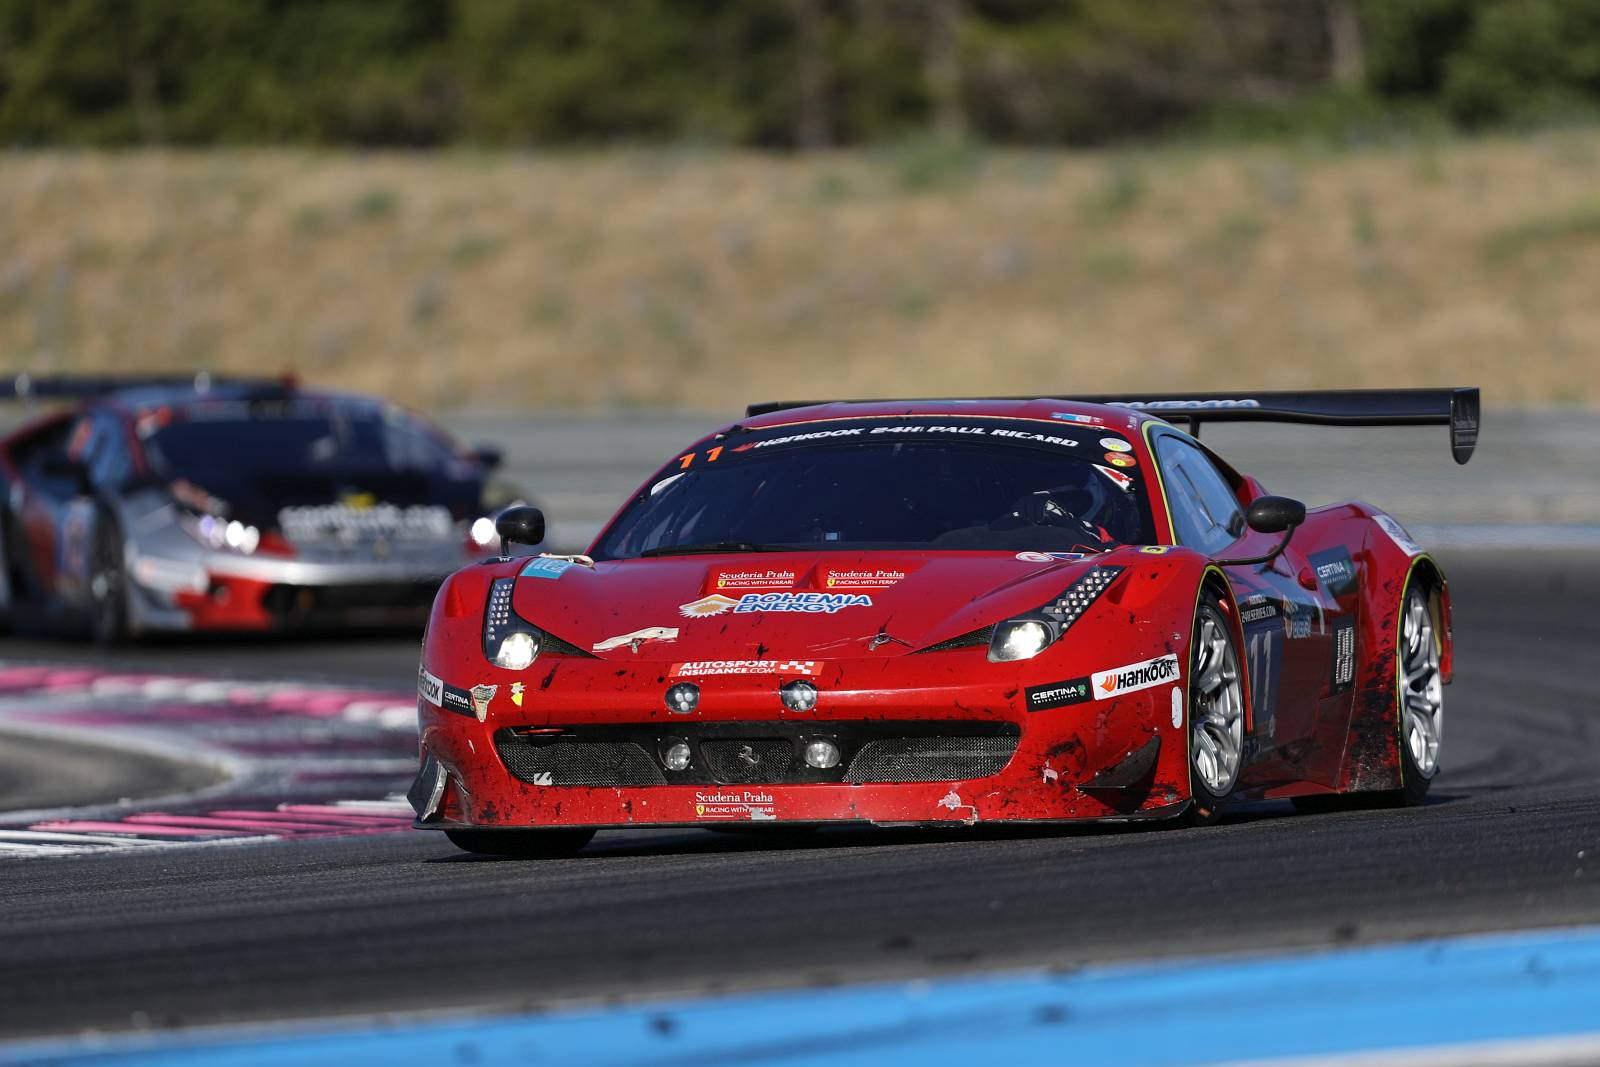 peter-kox-24h-paul-ricard-2016-026